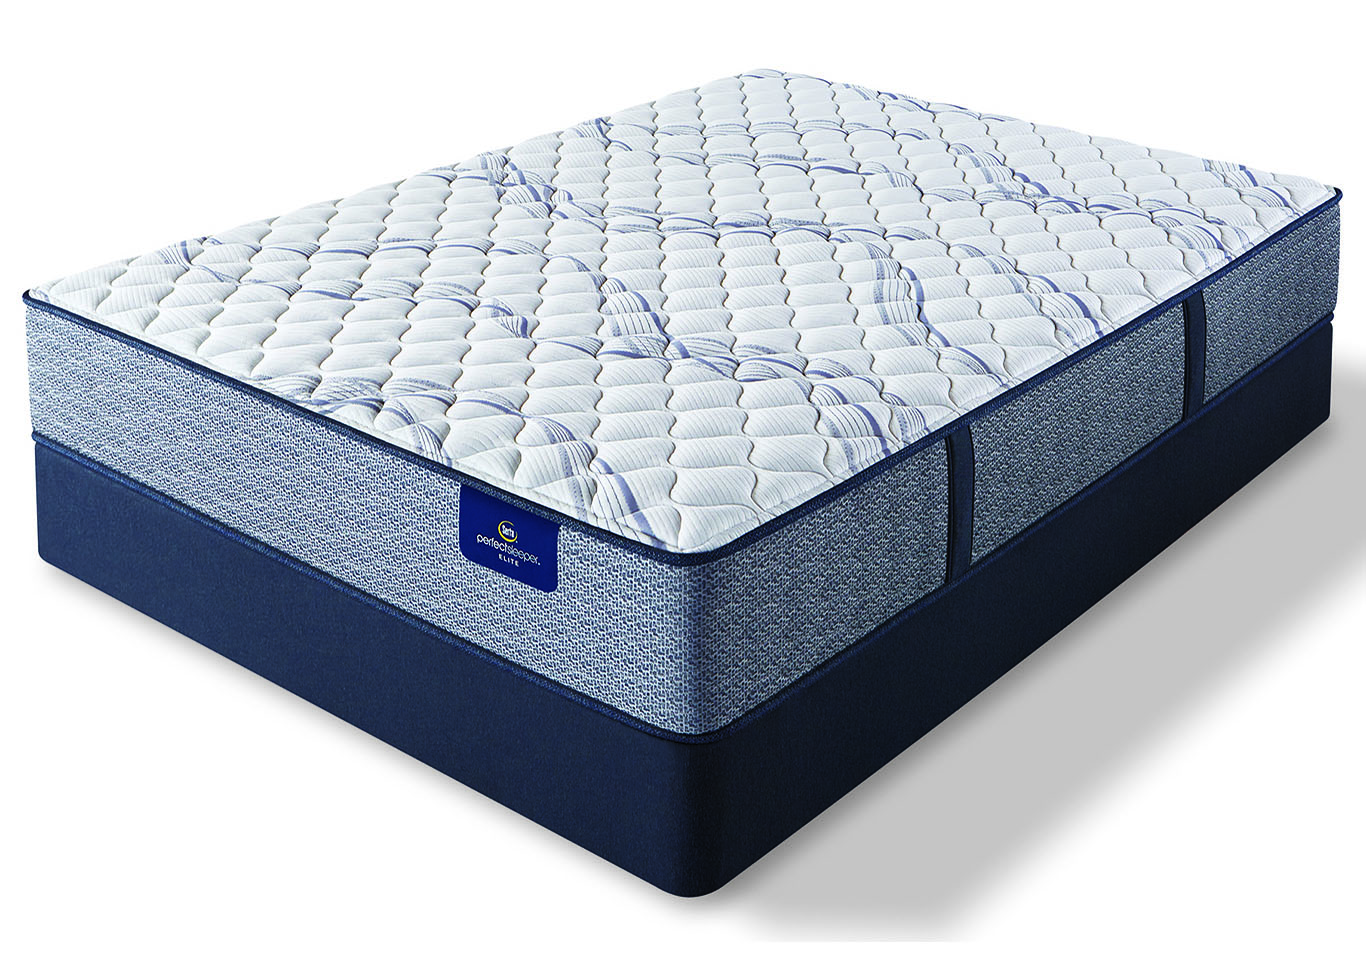 2019 Perfect Sleeper - Sedgewick II Firm TW XL,Serta